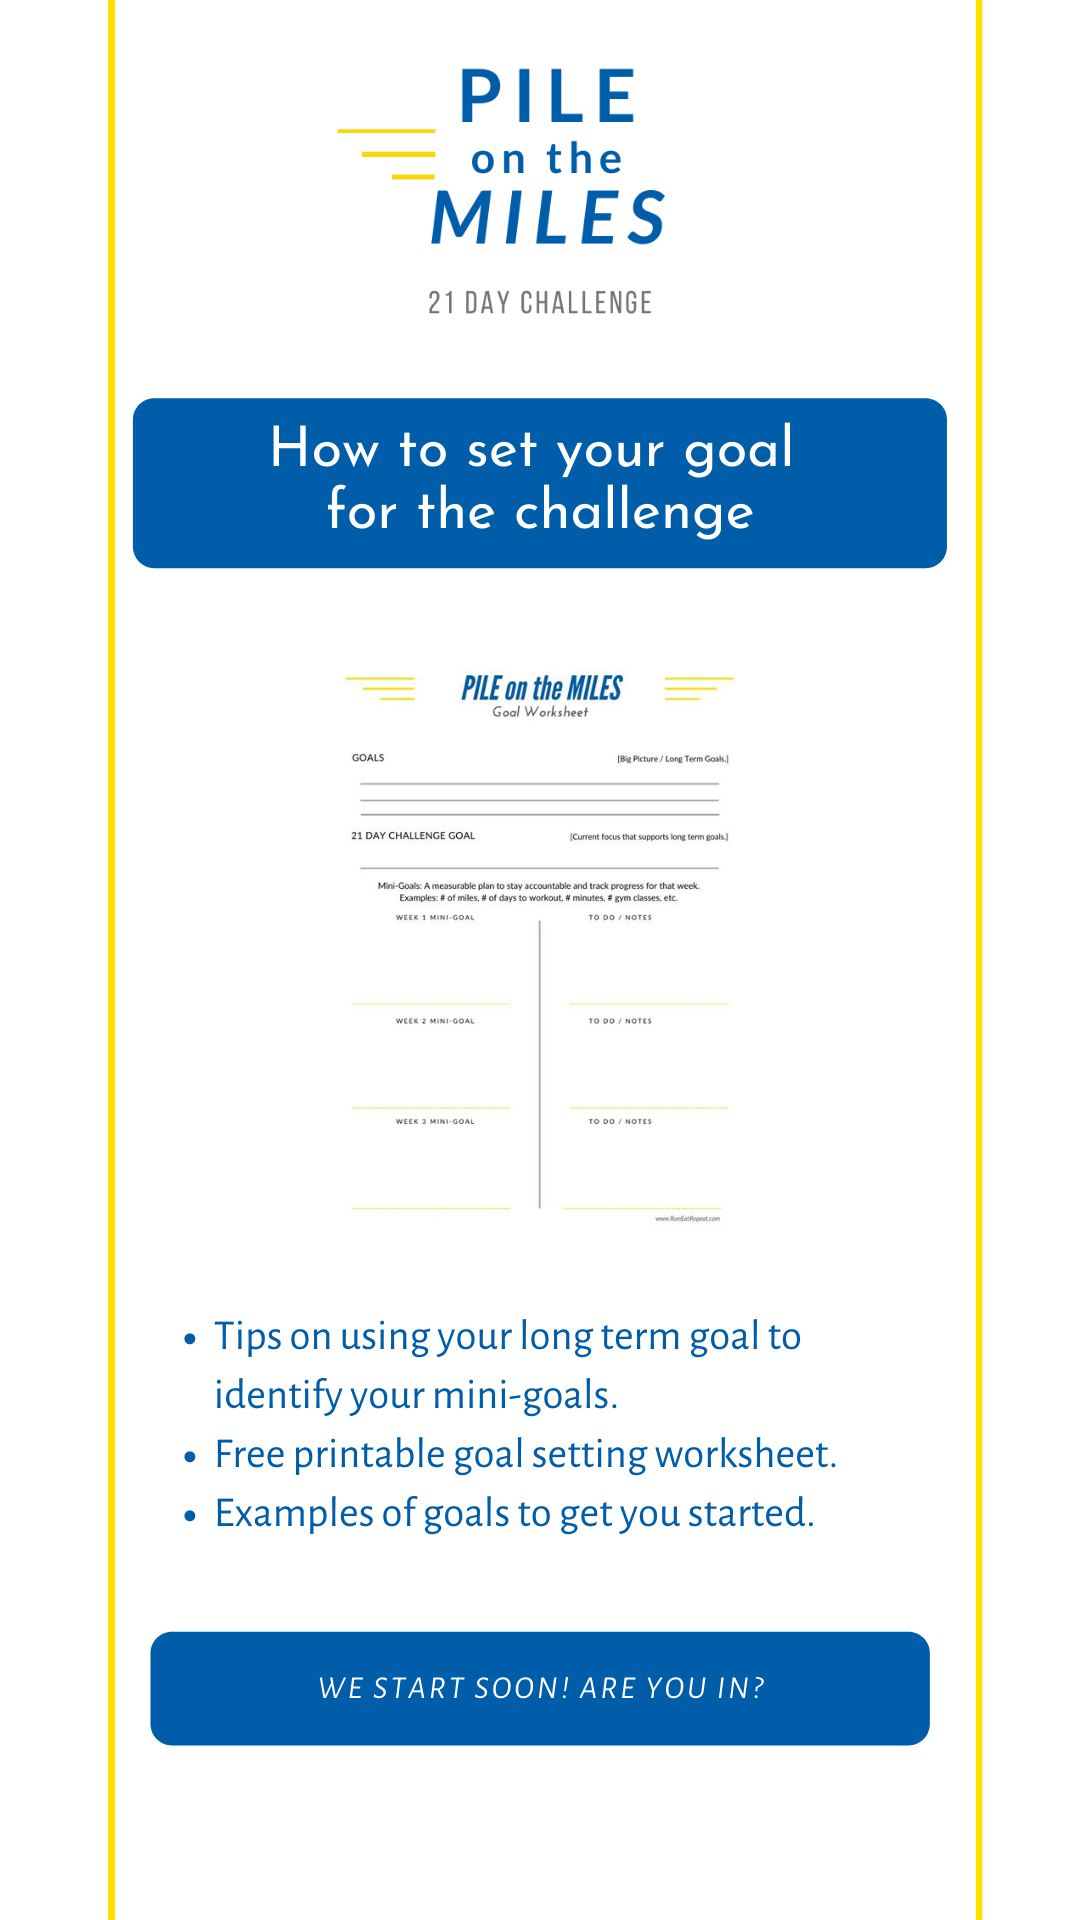 How To Set A Running Goal For Pile On The Miles Challenge